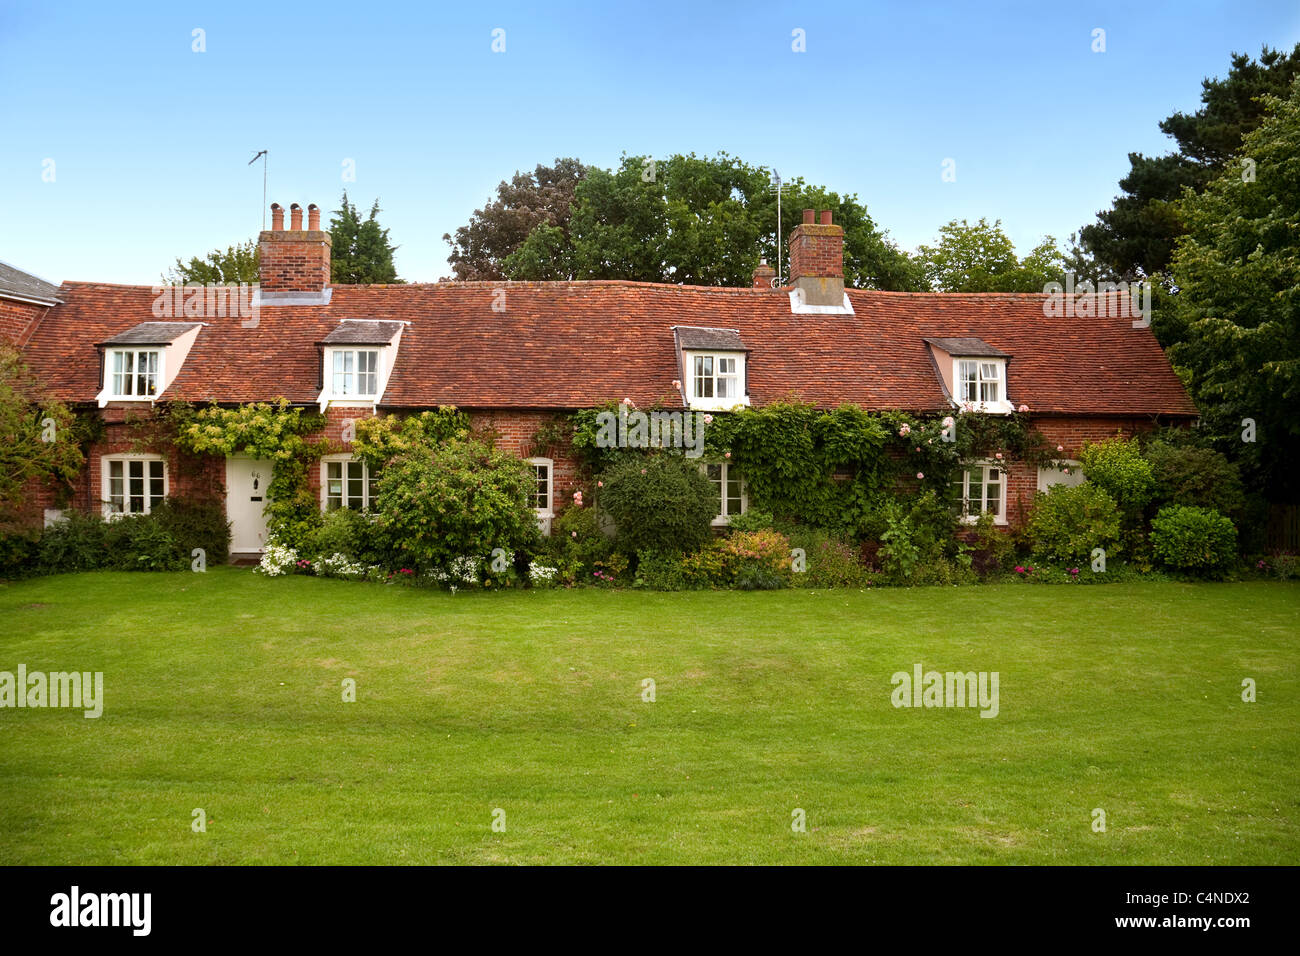 Cottages on the village green at Orford, Suffolk UK - Stock Image